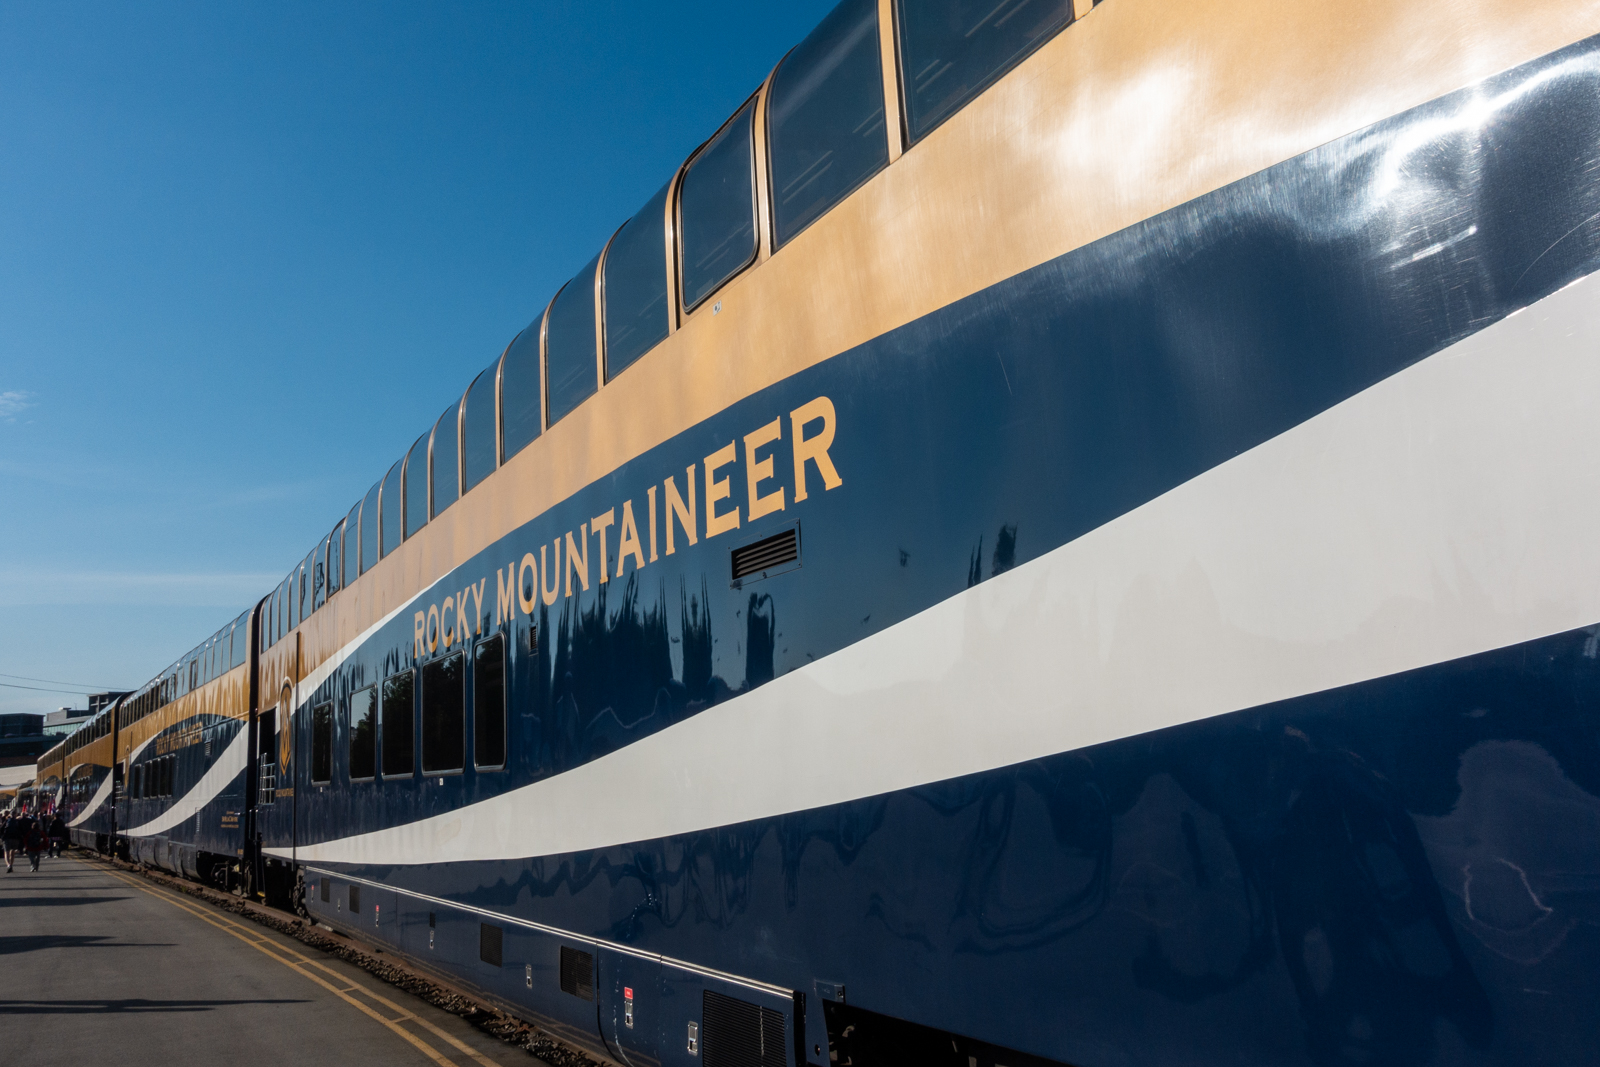 Aboard the Rocky Mountaineer - Vancouver to Kamloops